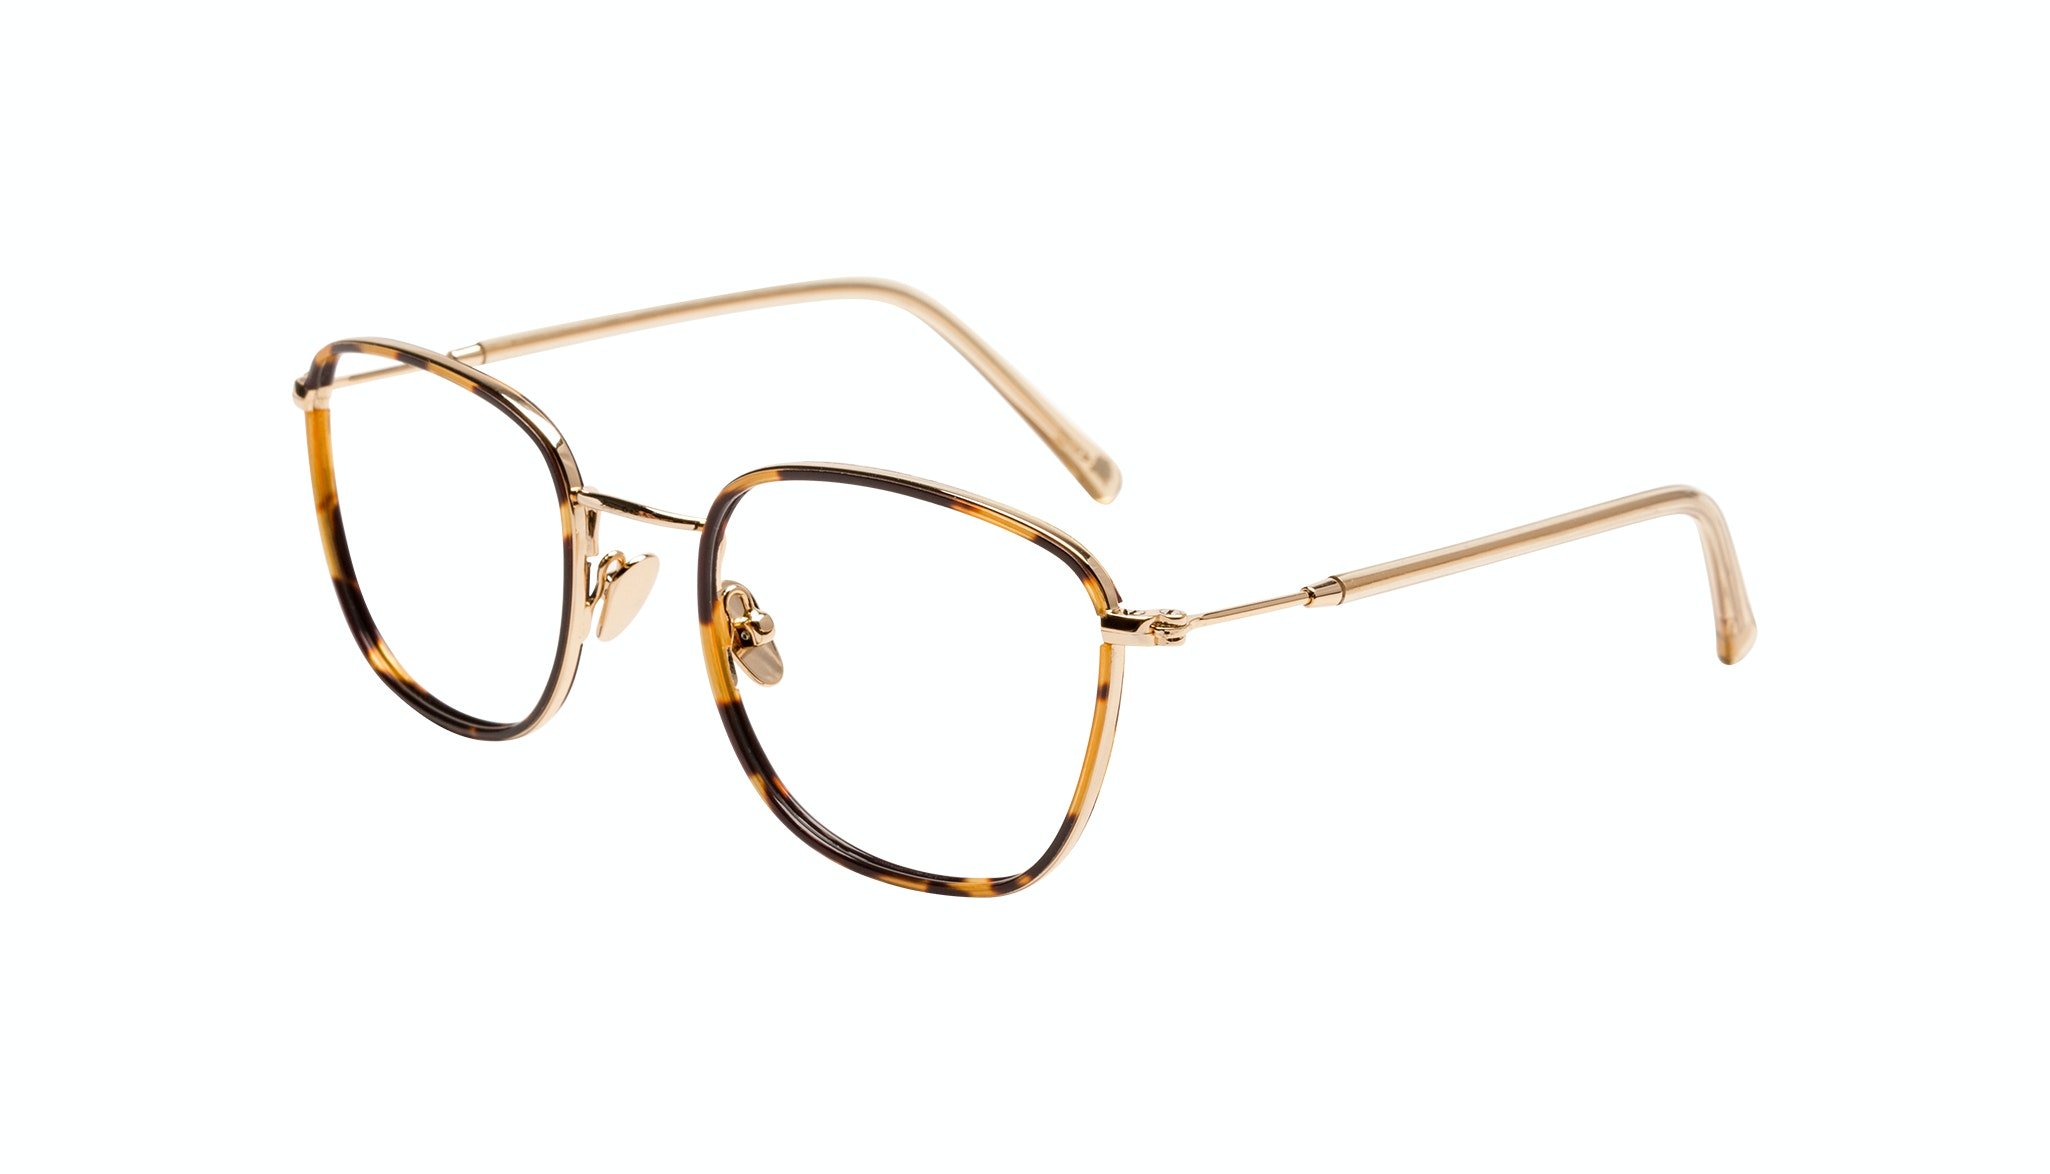 Affordable Fashion Glasses Rectangle Eyeglasses Women Lawrence Gypsy Tilt